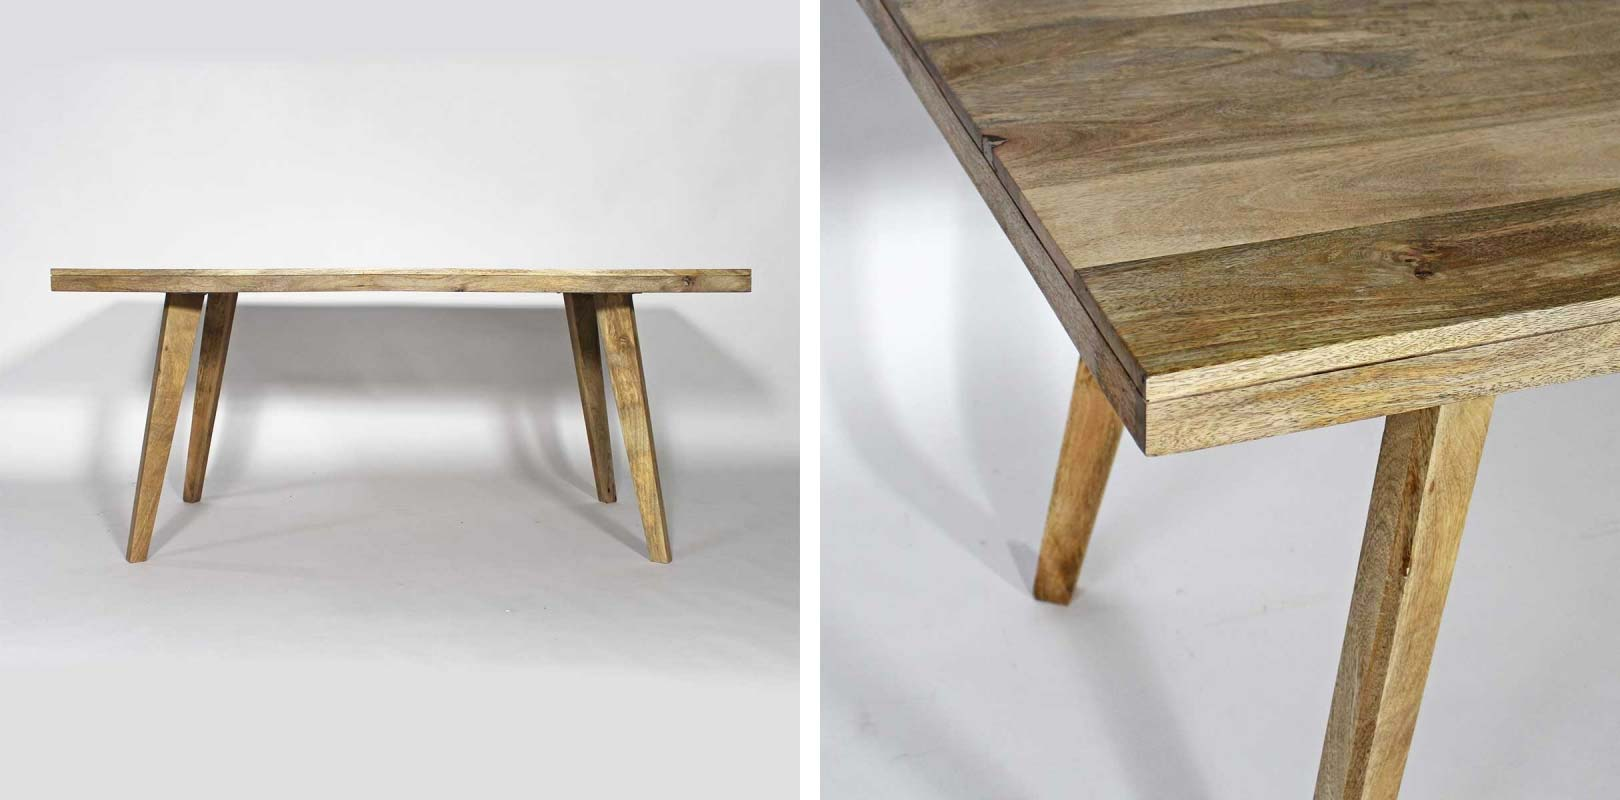 Table bois en clair pour une d co scandinave for Table scandinave a rallonge